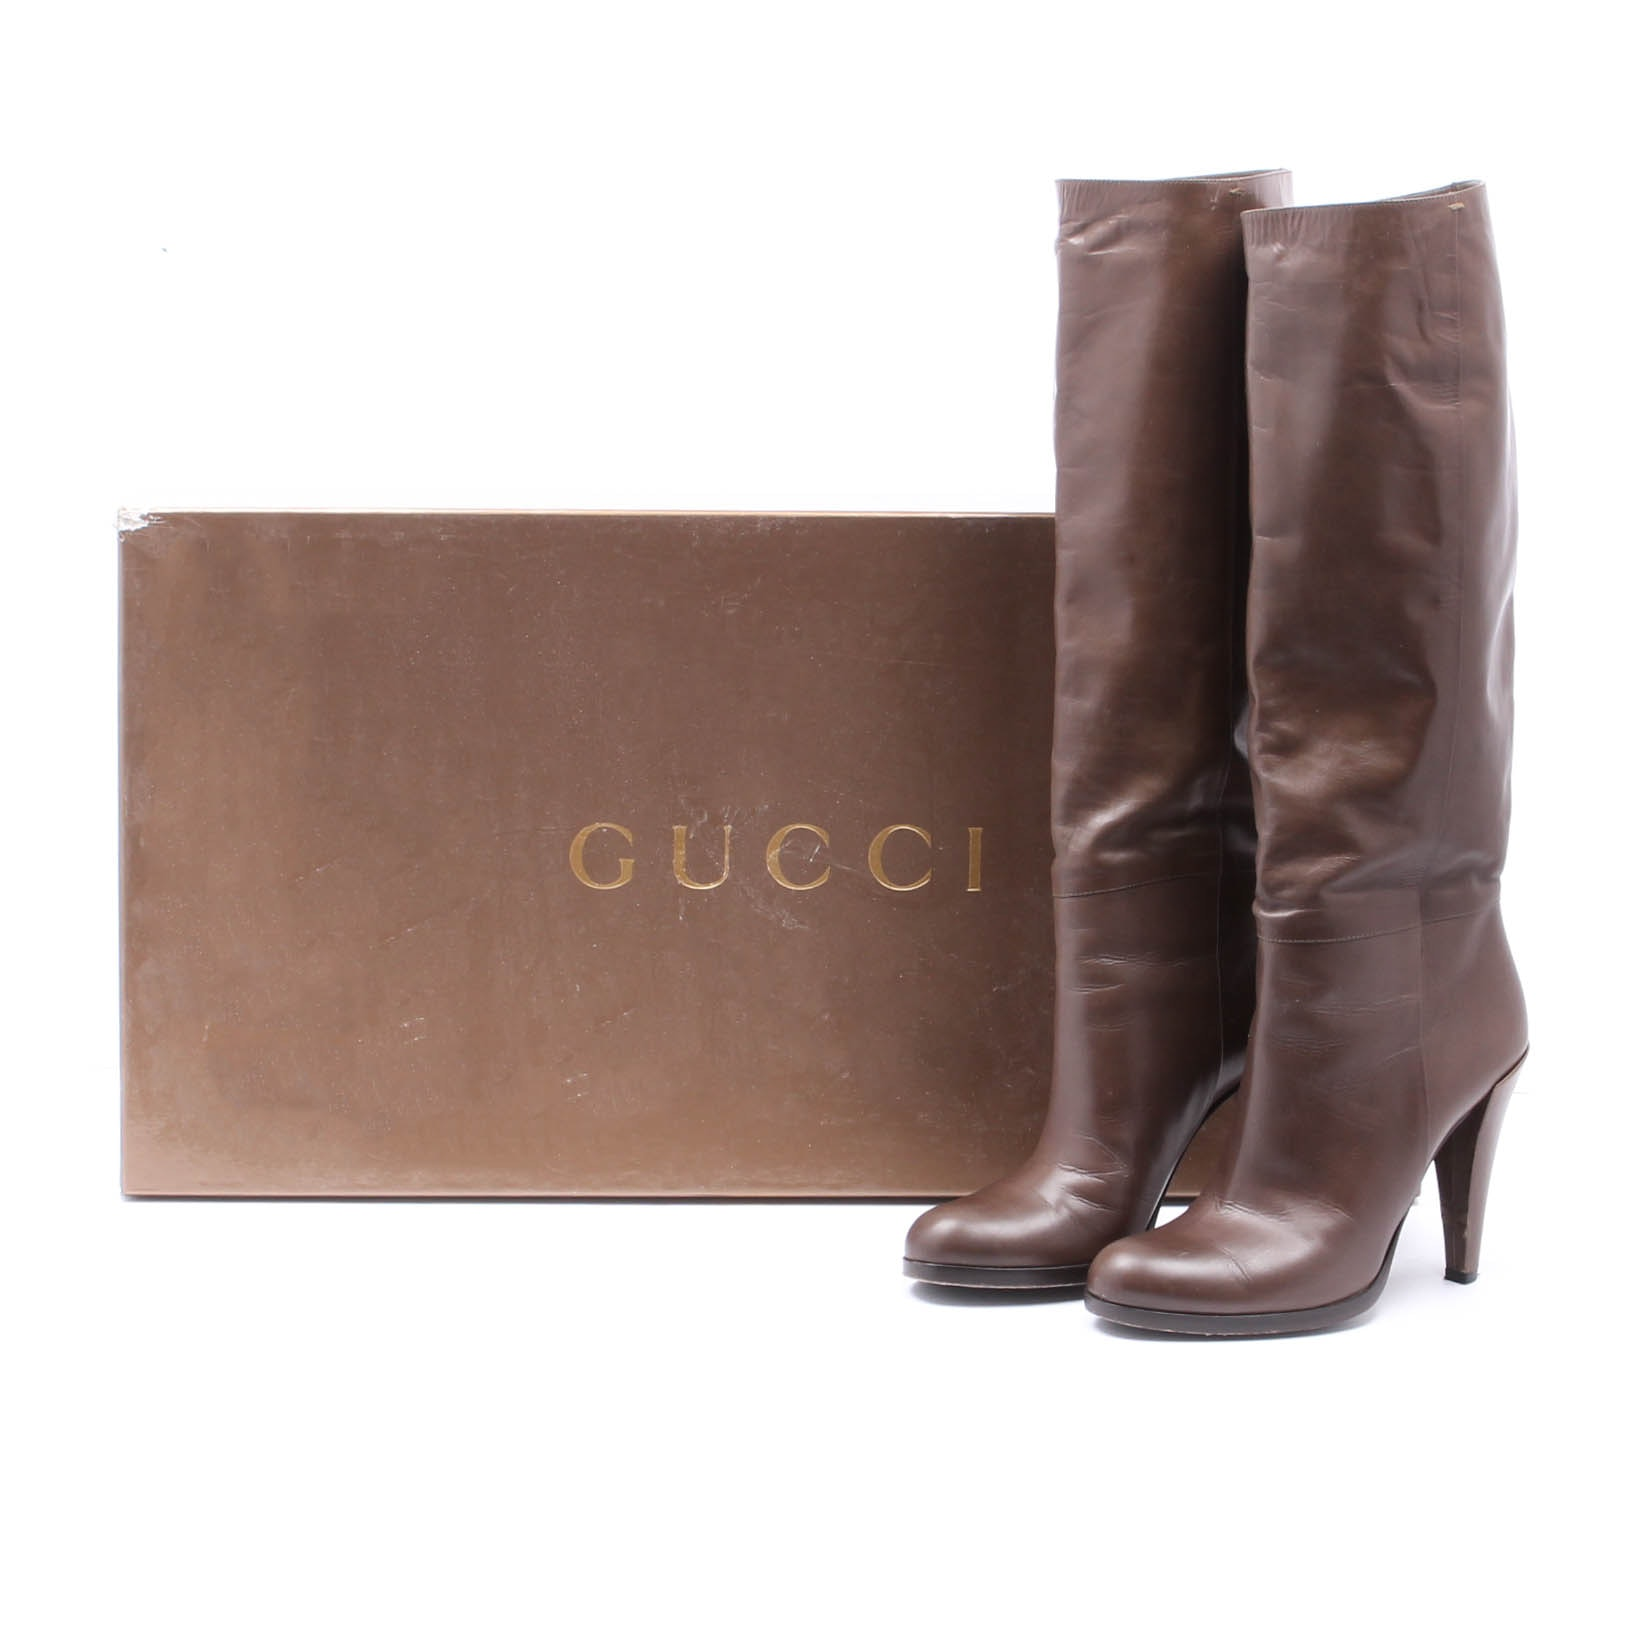 Gucci Elizabeth Dapple Brown Leather Boots